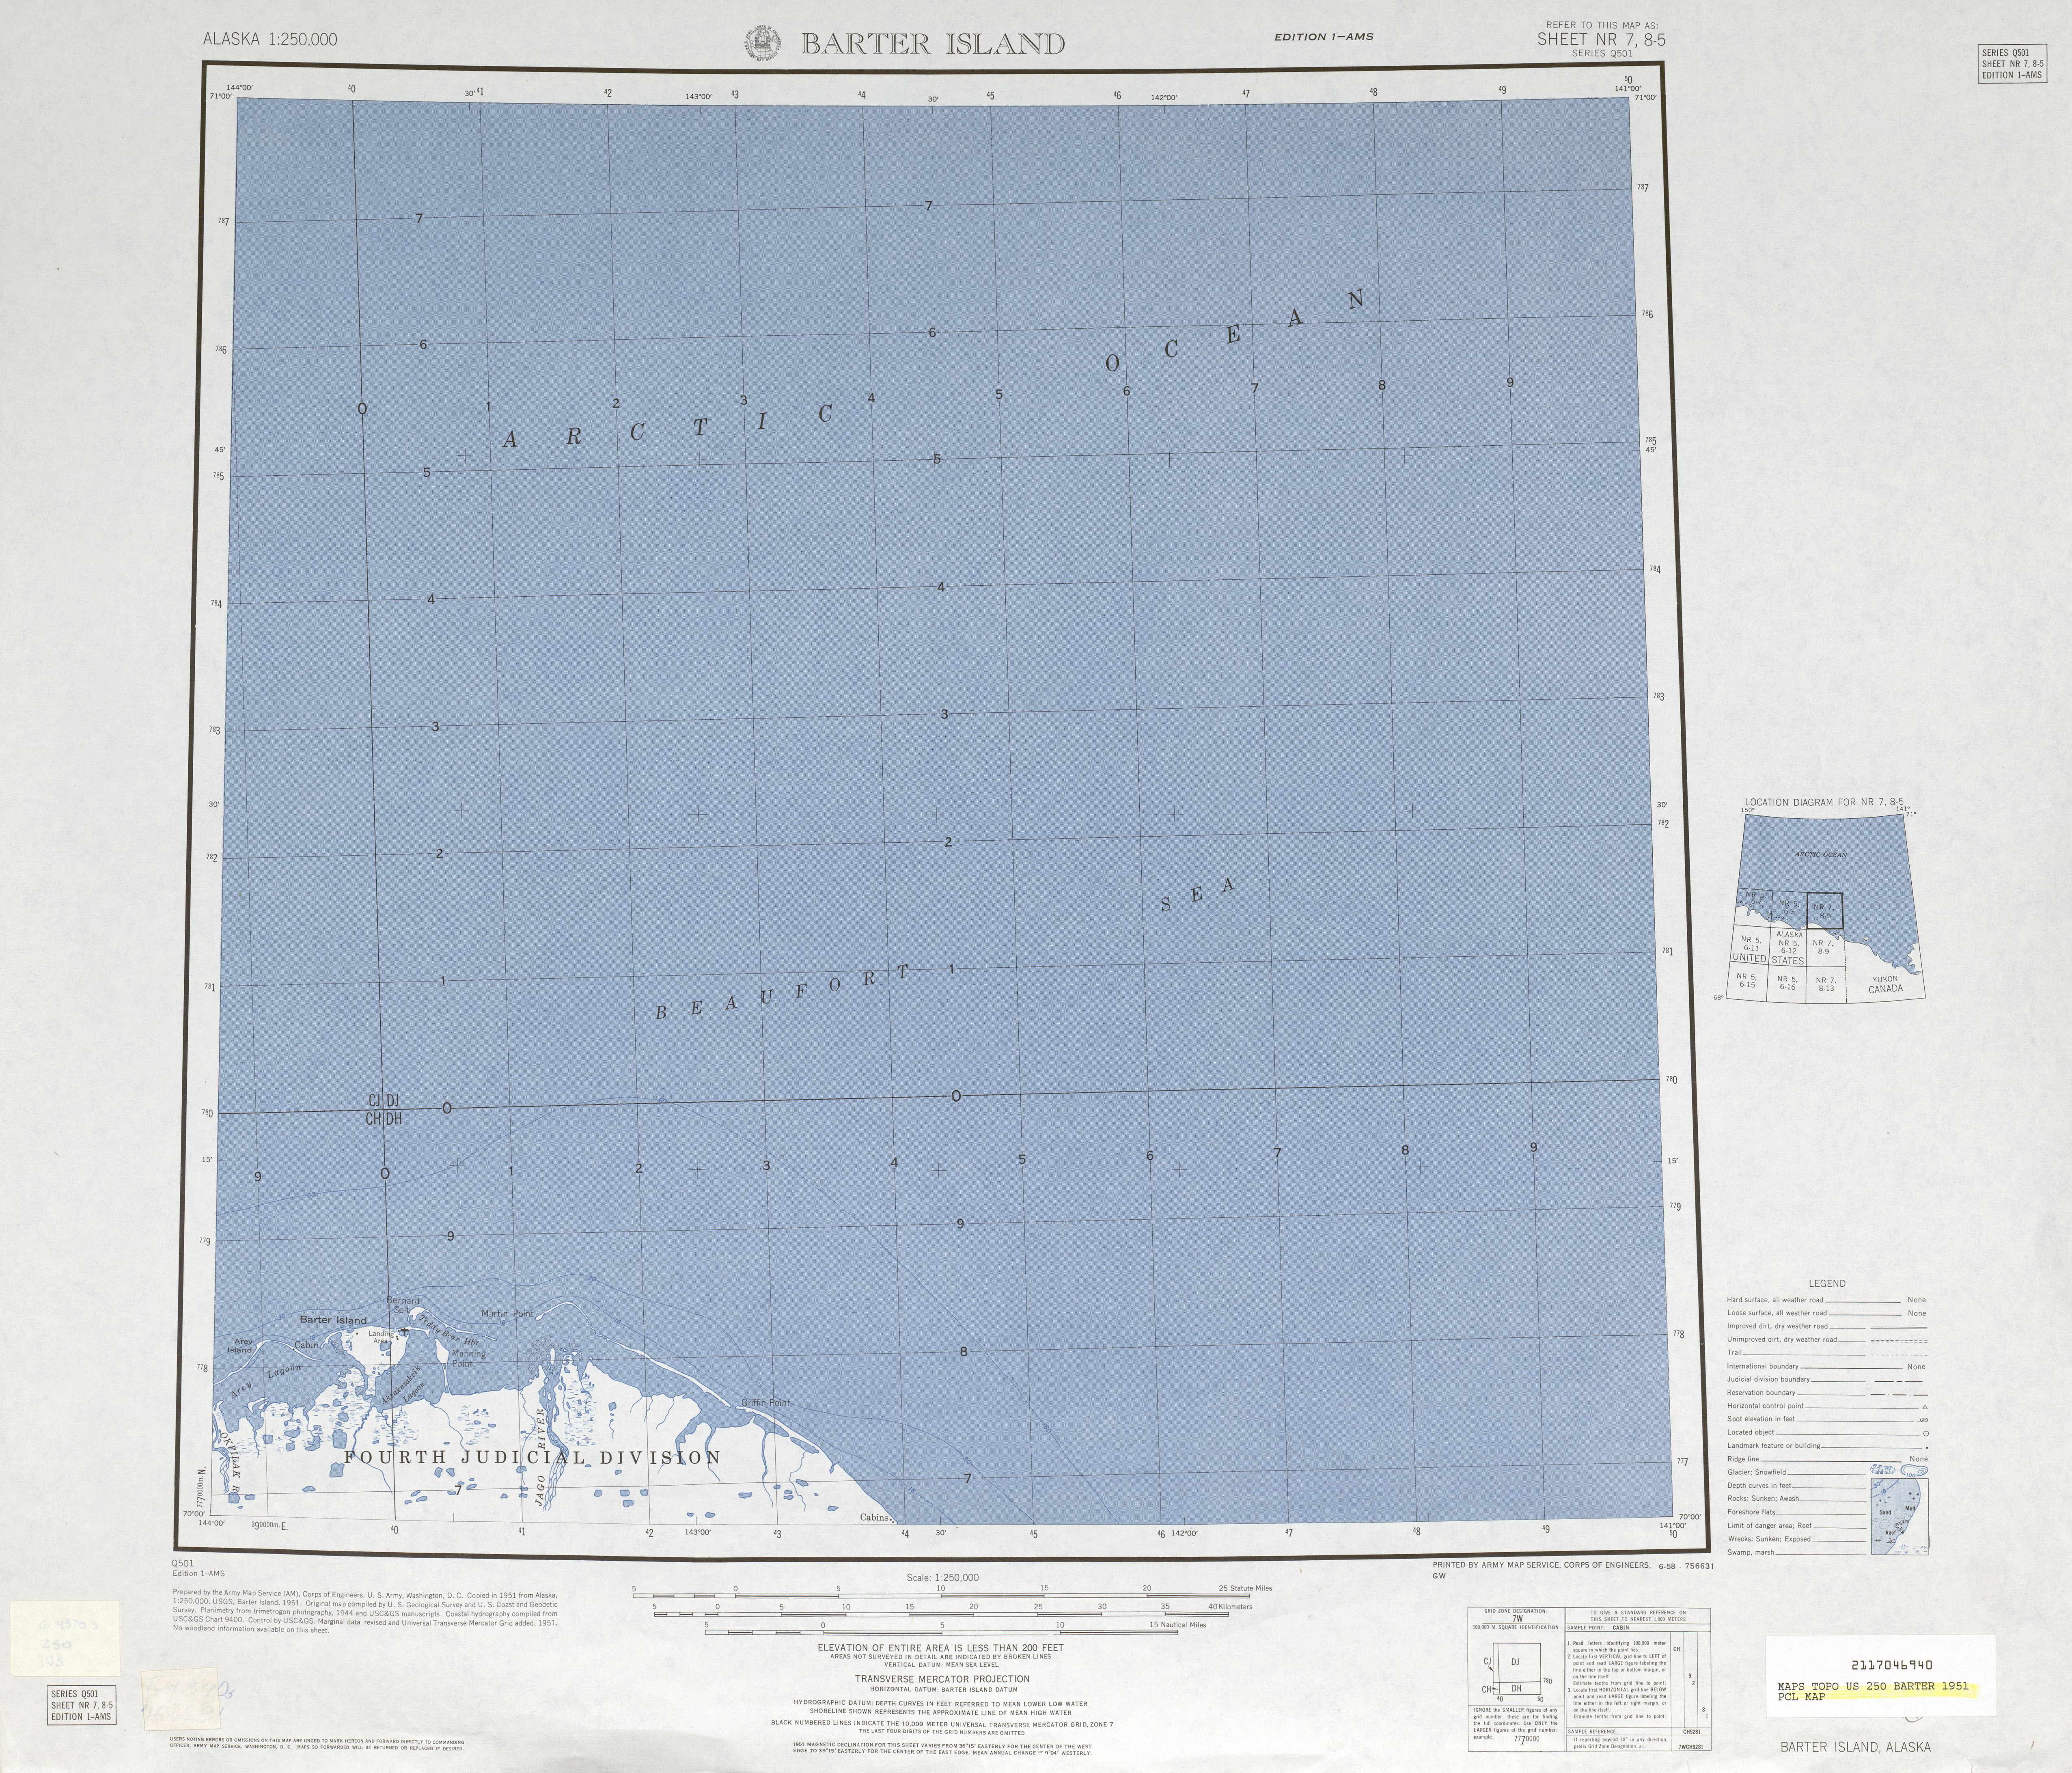 Barter Island Topographic Map Sheet, United States 1951